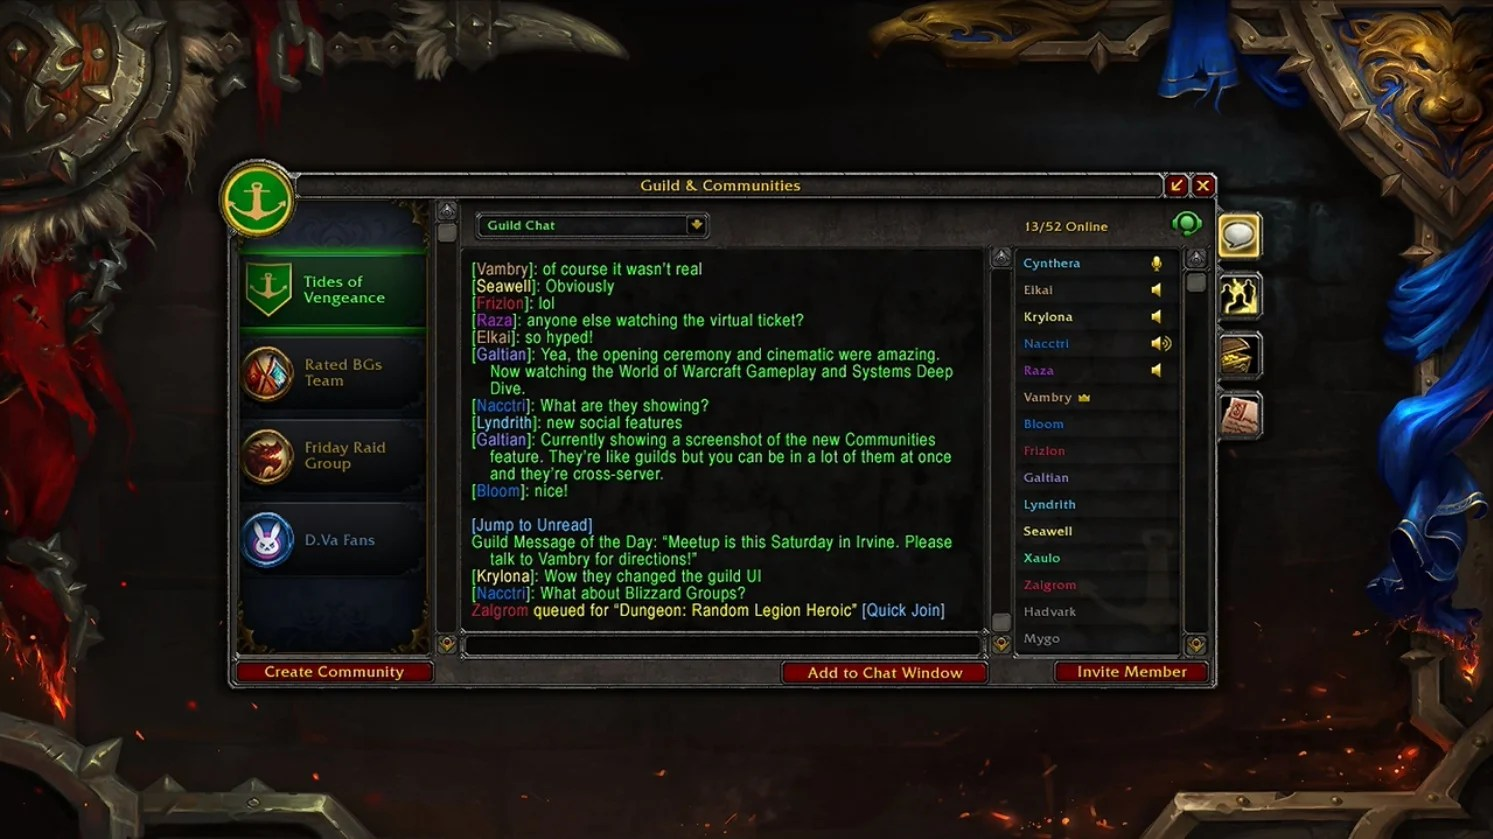 96+ One Of My Greatest Regrets In Wow Is Never Accepting This Quest